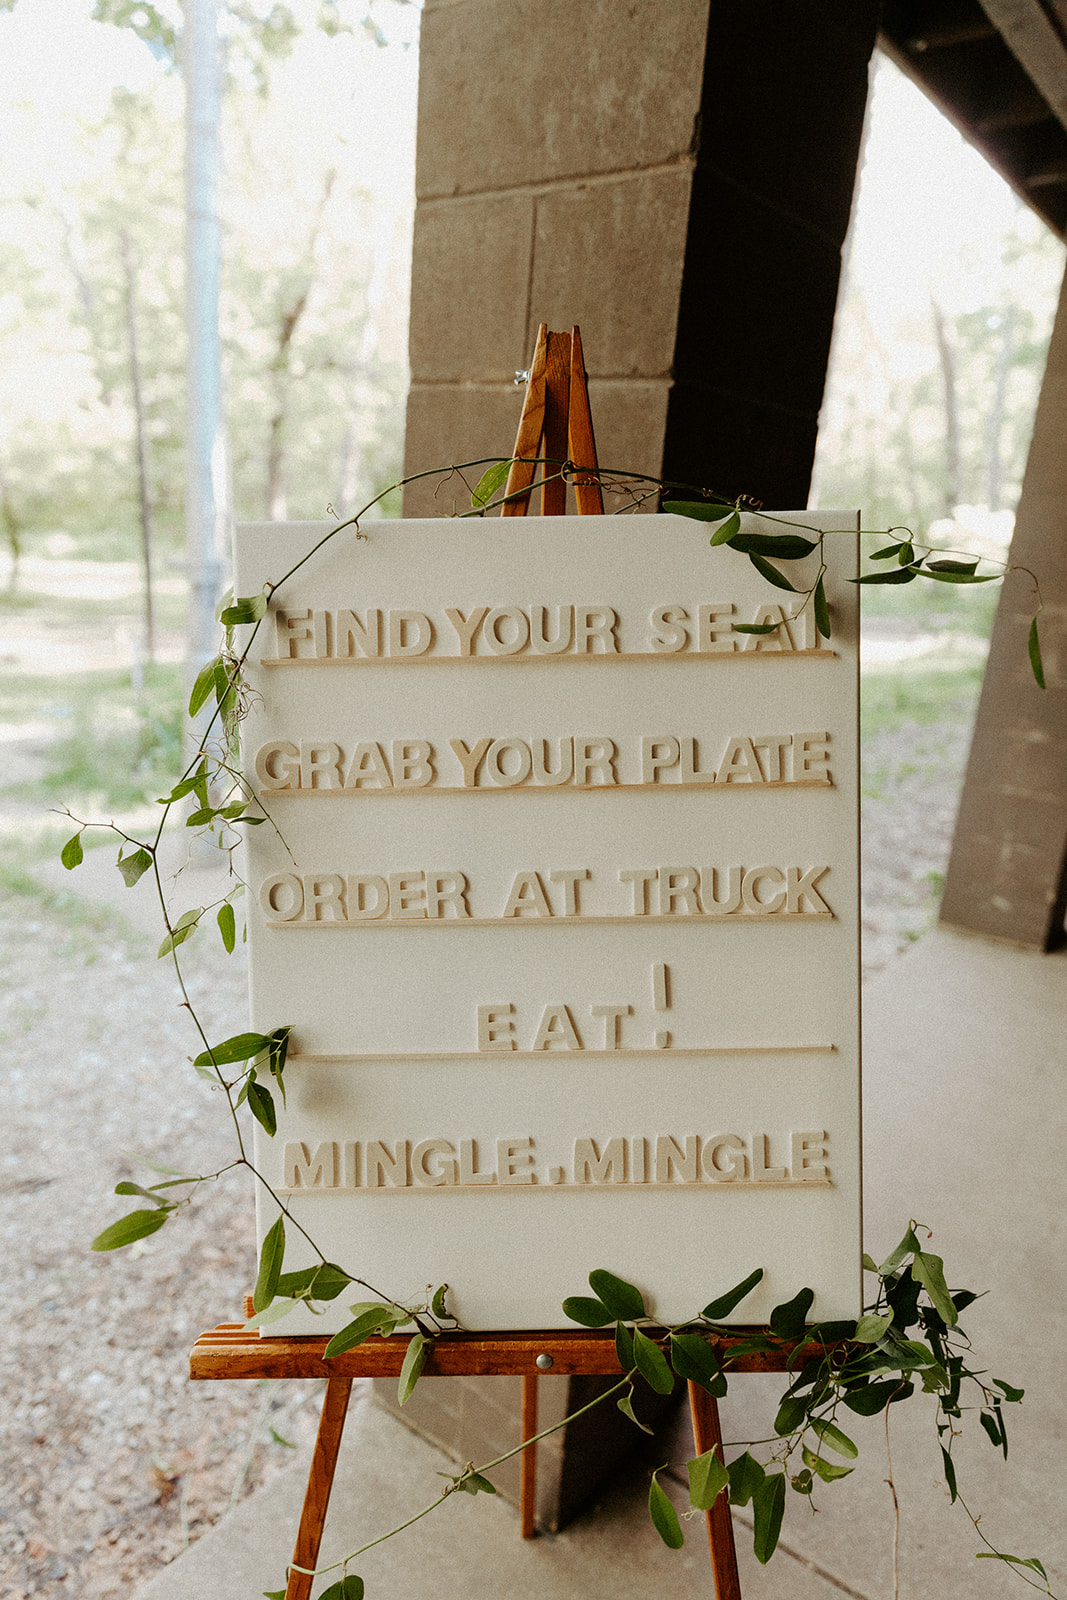 camp_wokanda_peoria_illinois_wedding_photographer_wright_photographs_bliese_0844.jpg